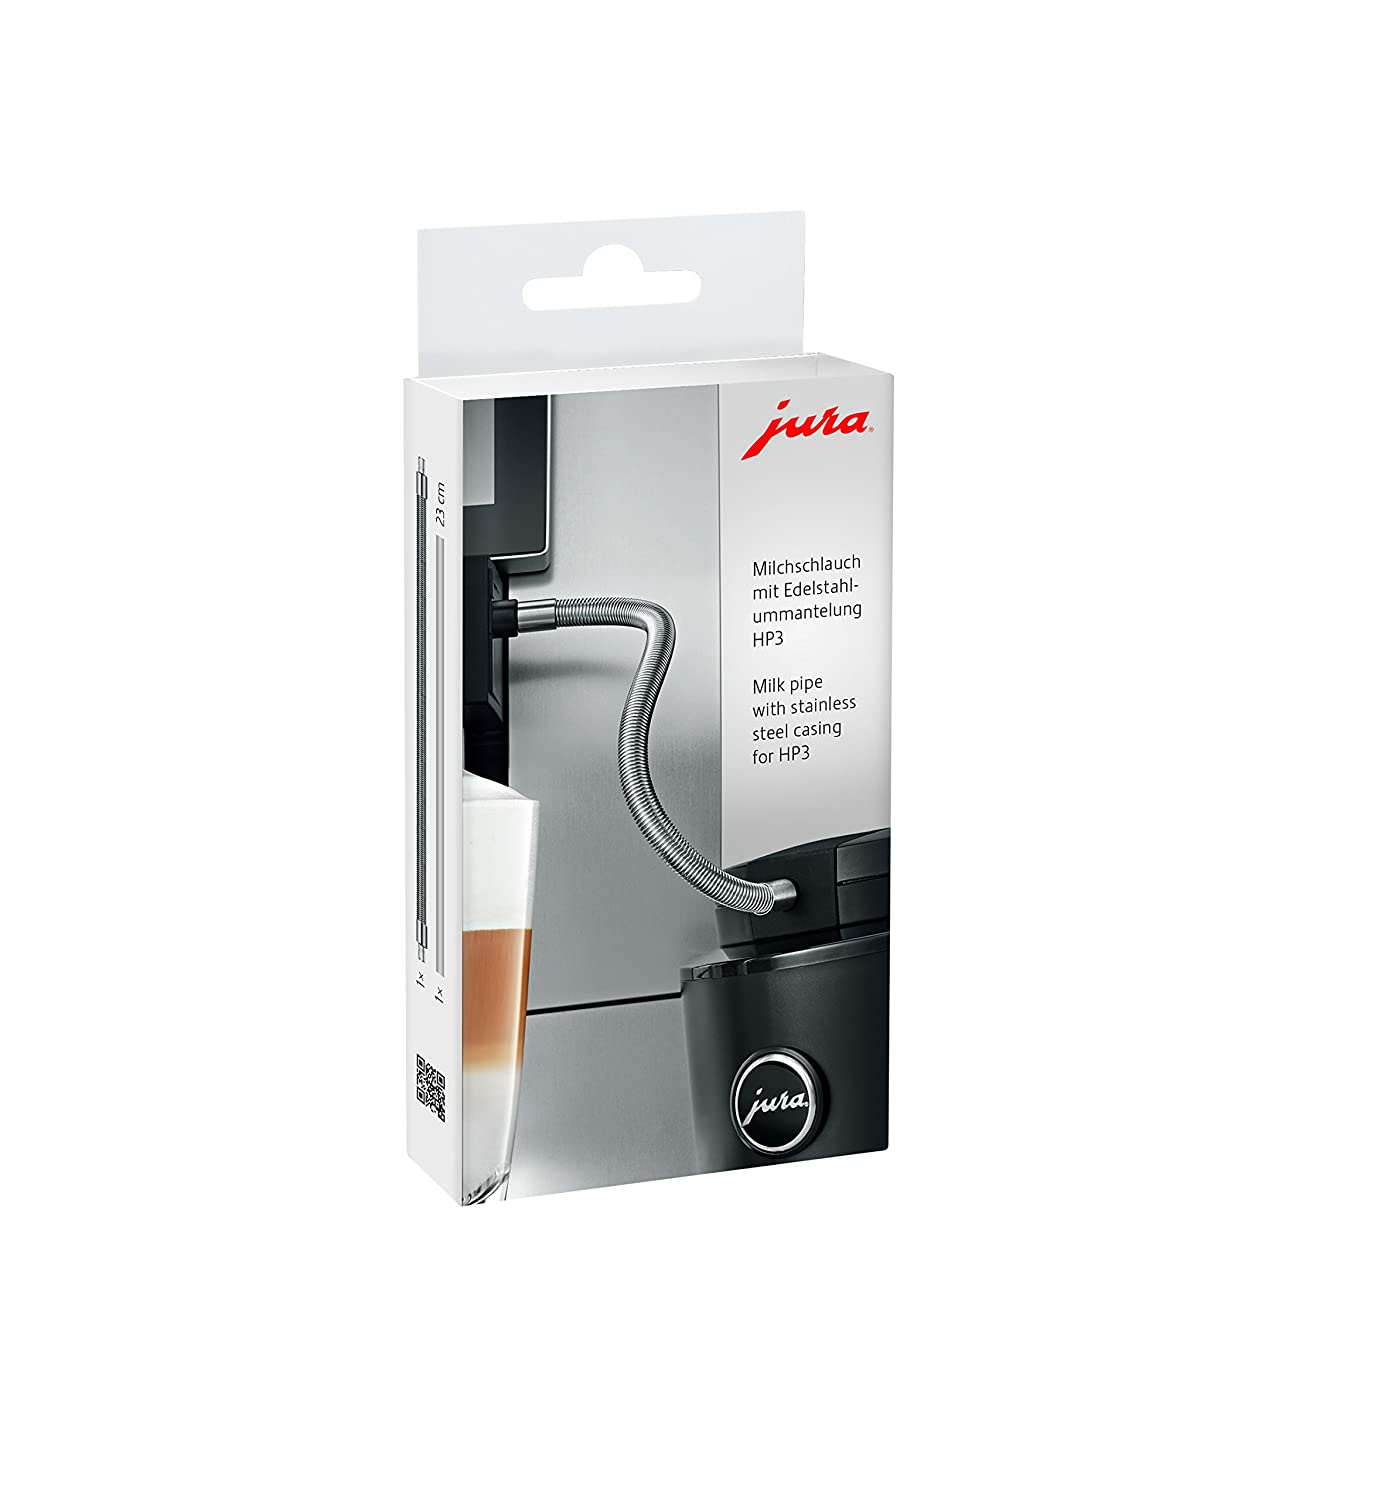 Jura 24114 Milk Tube with Edelstahlummantelung HP3 Silver